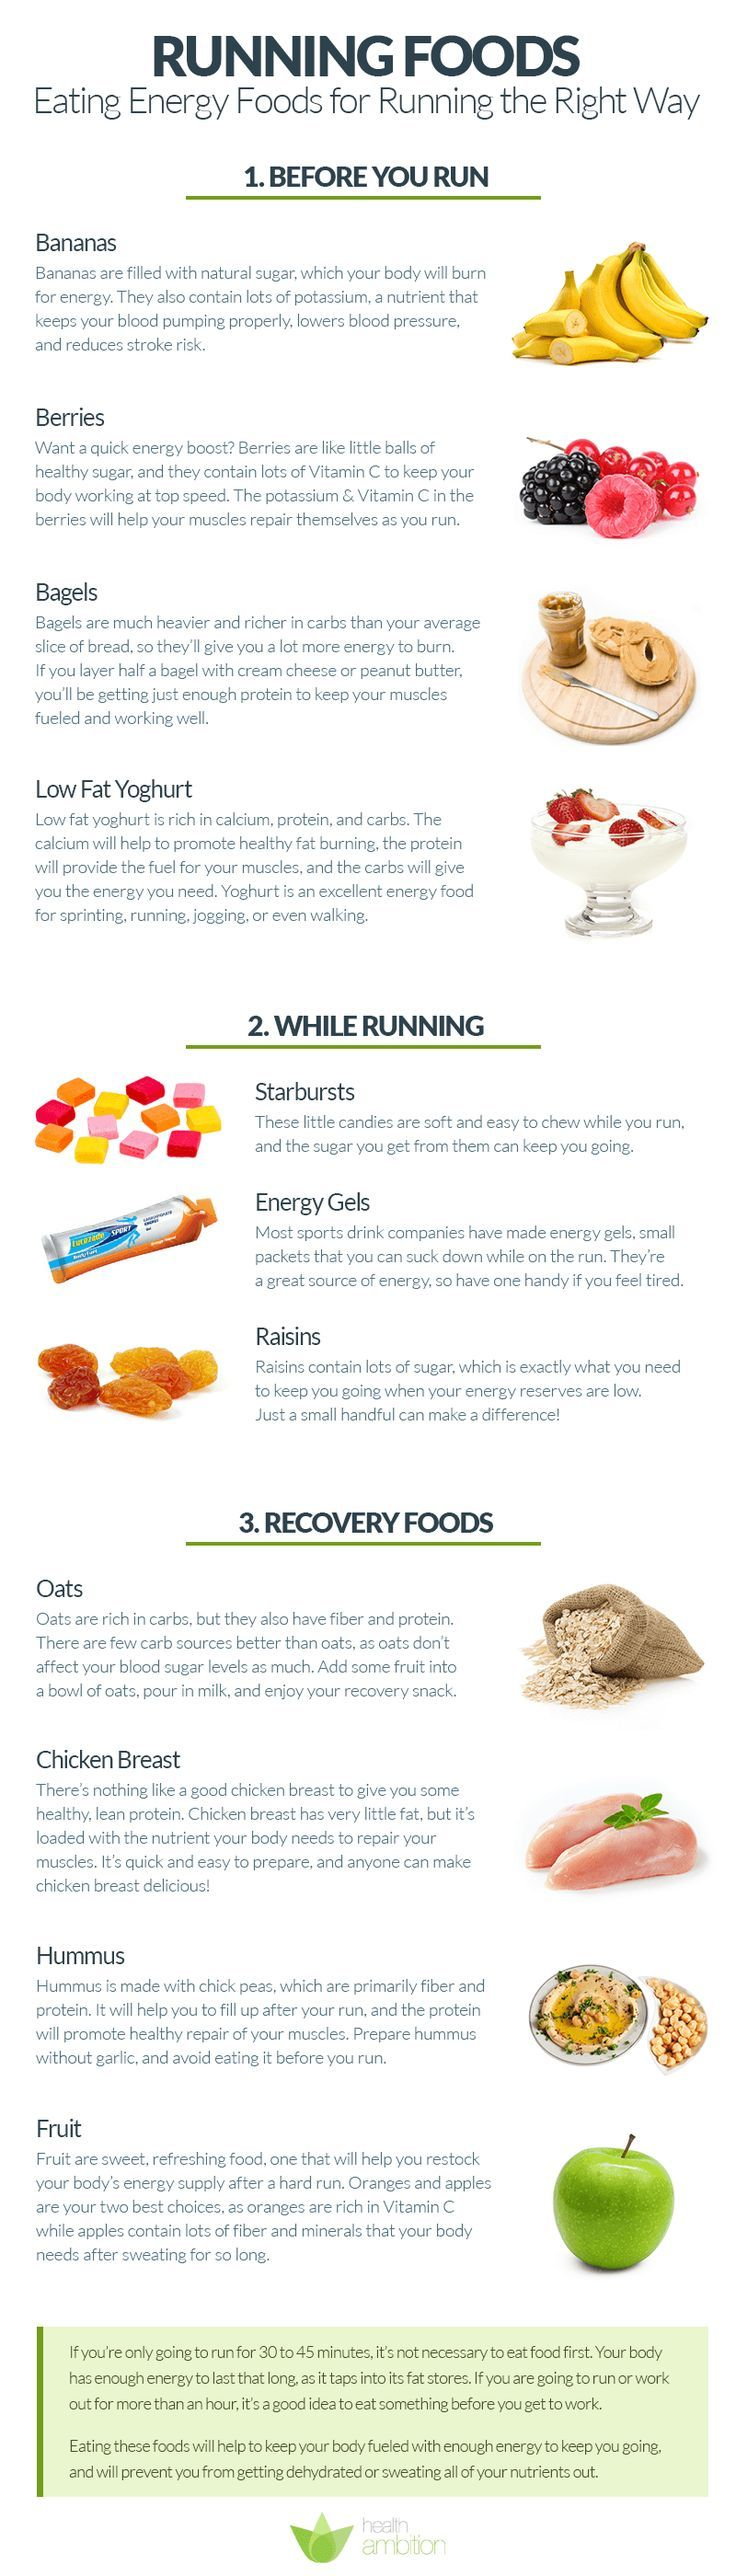 Mae S Whitefitness Running Food Workout Food Energy Foods